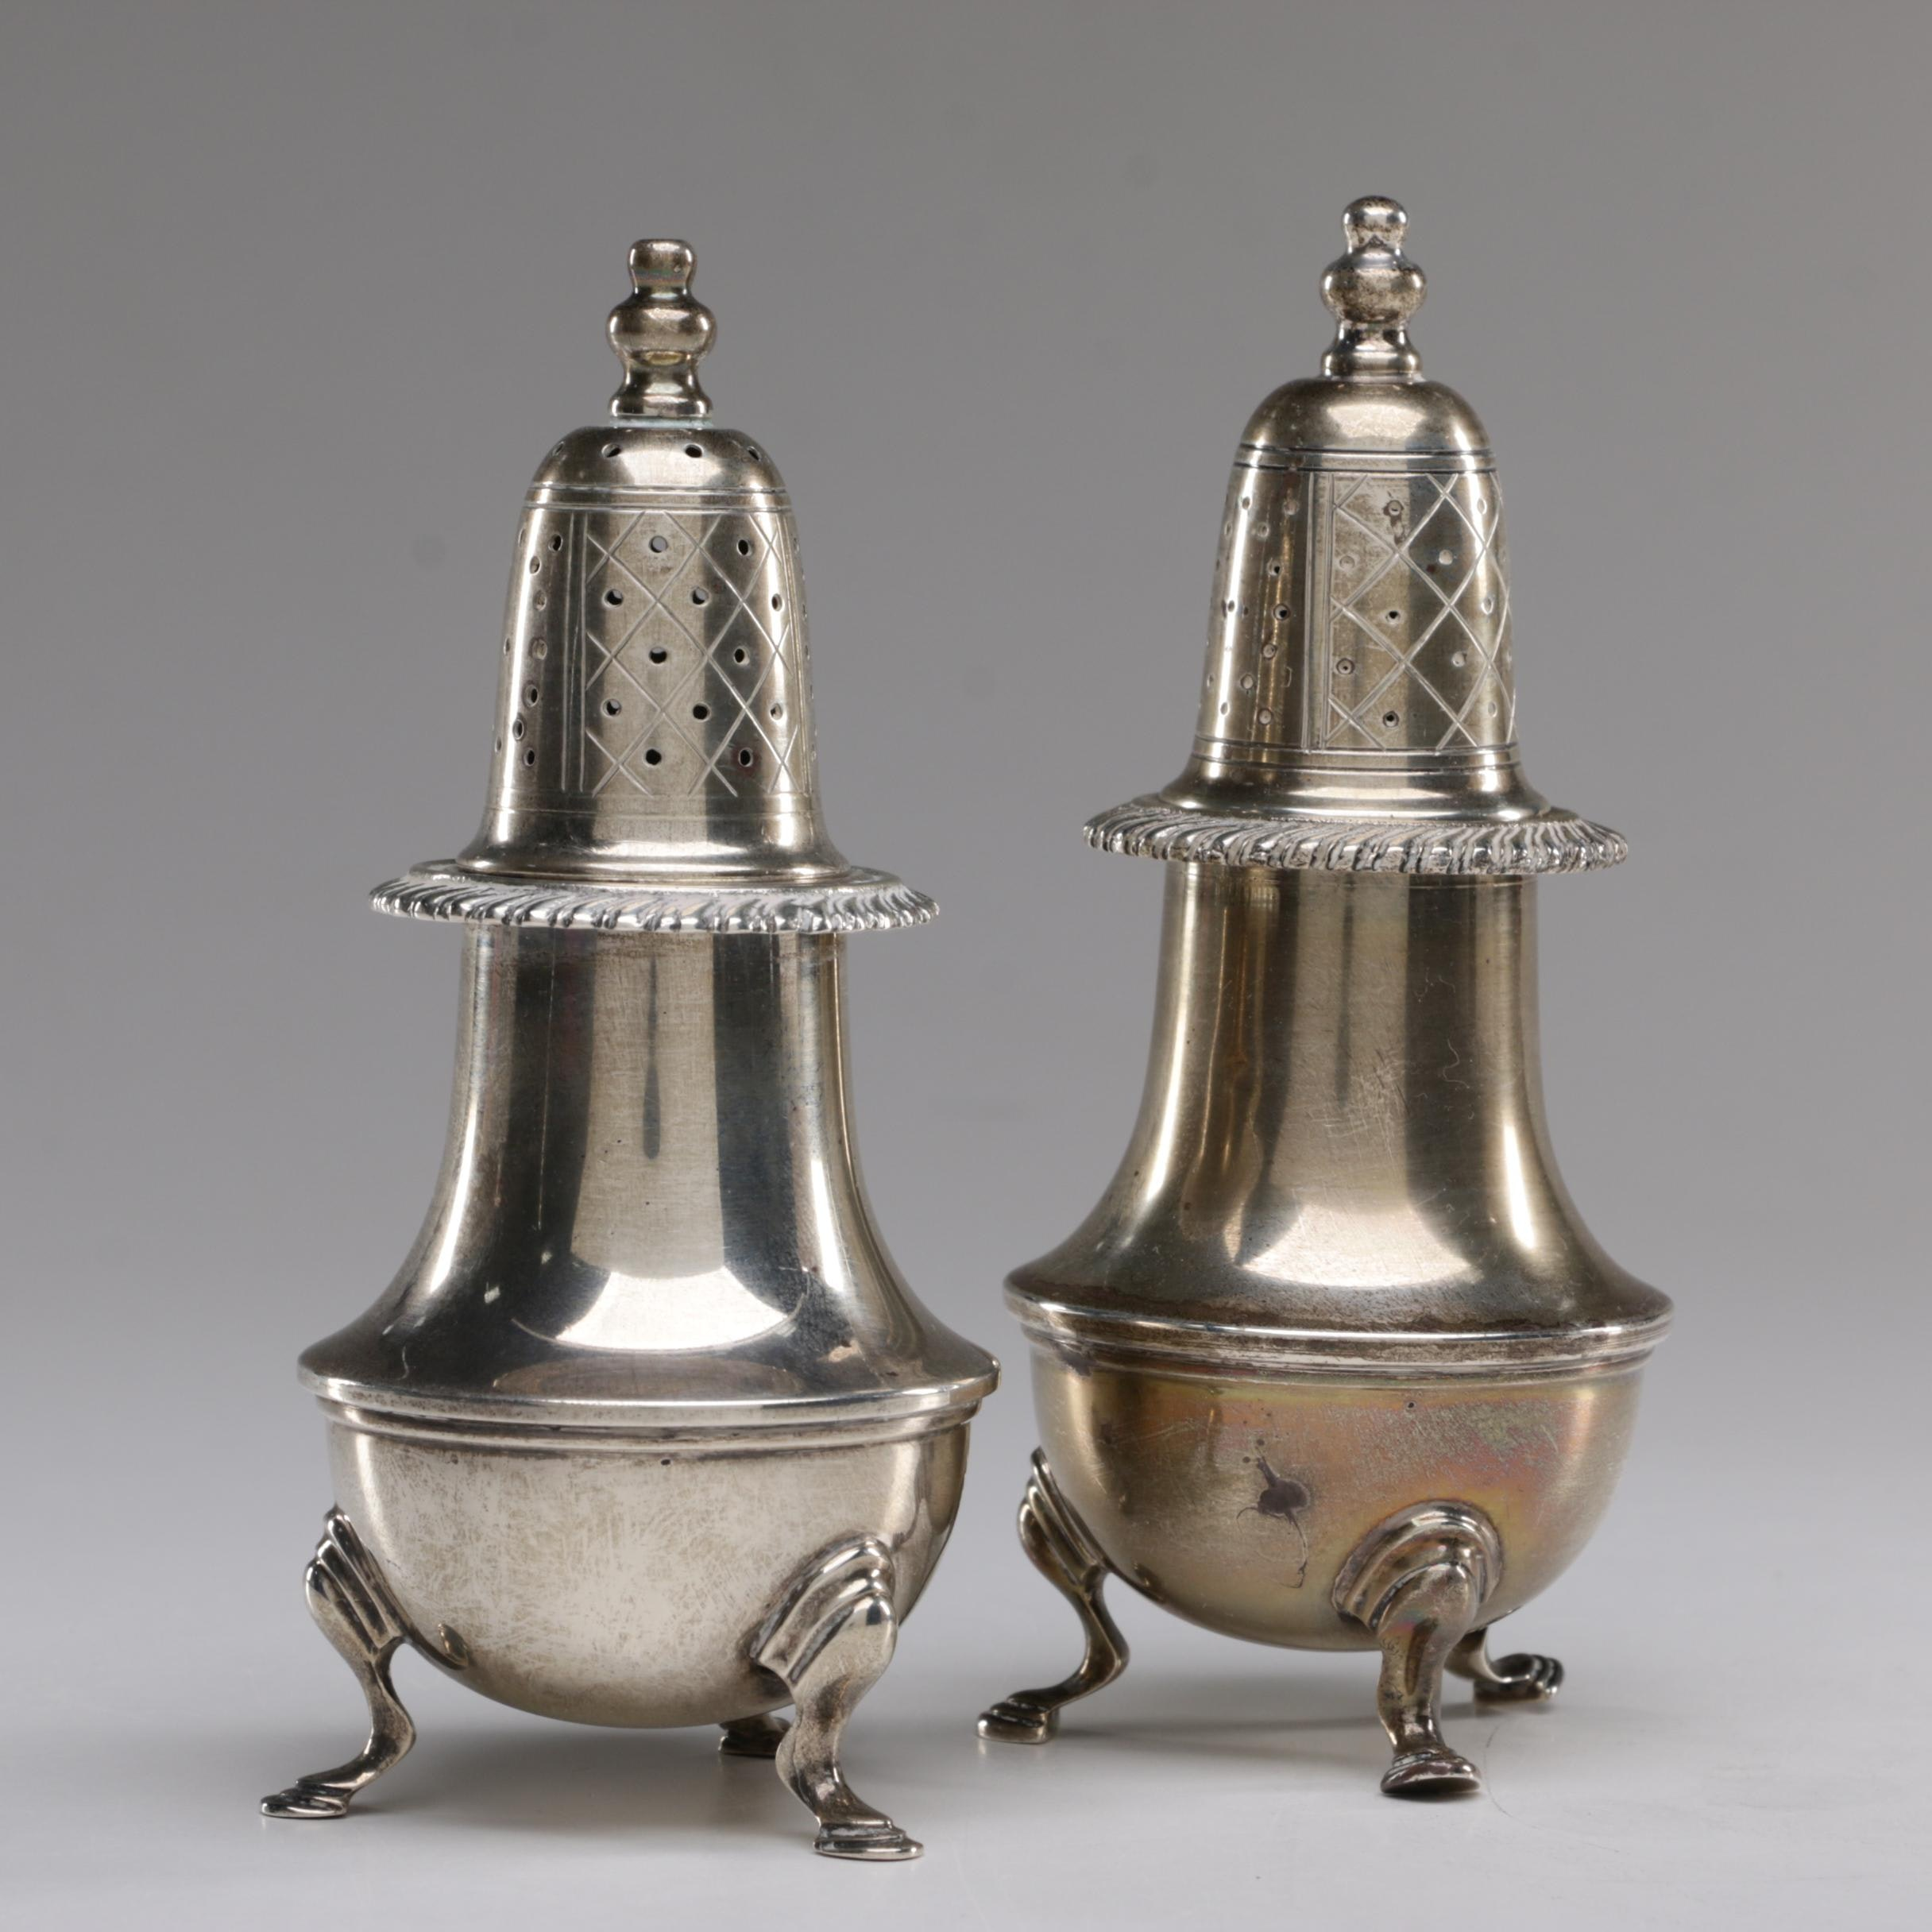 Redlich & Co. Early American Reproduction Sterling Silver Shakers